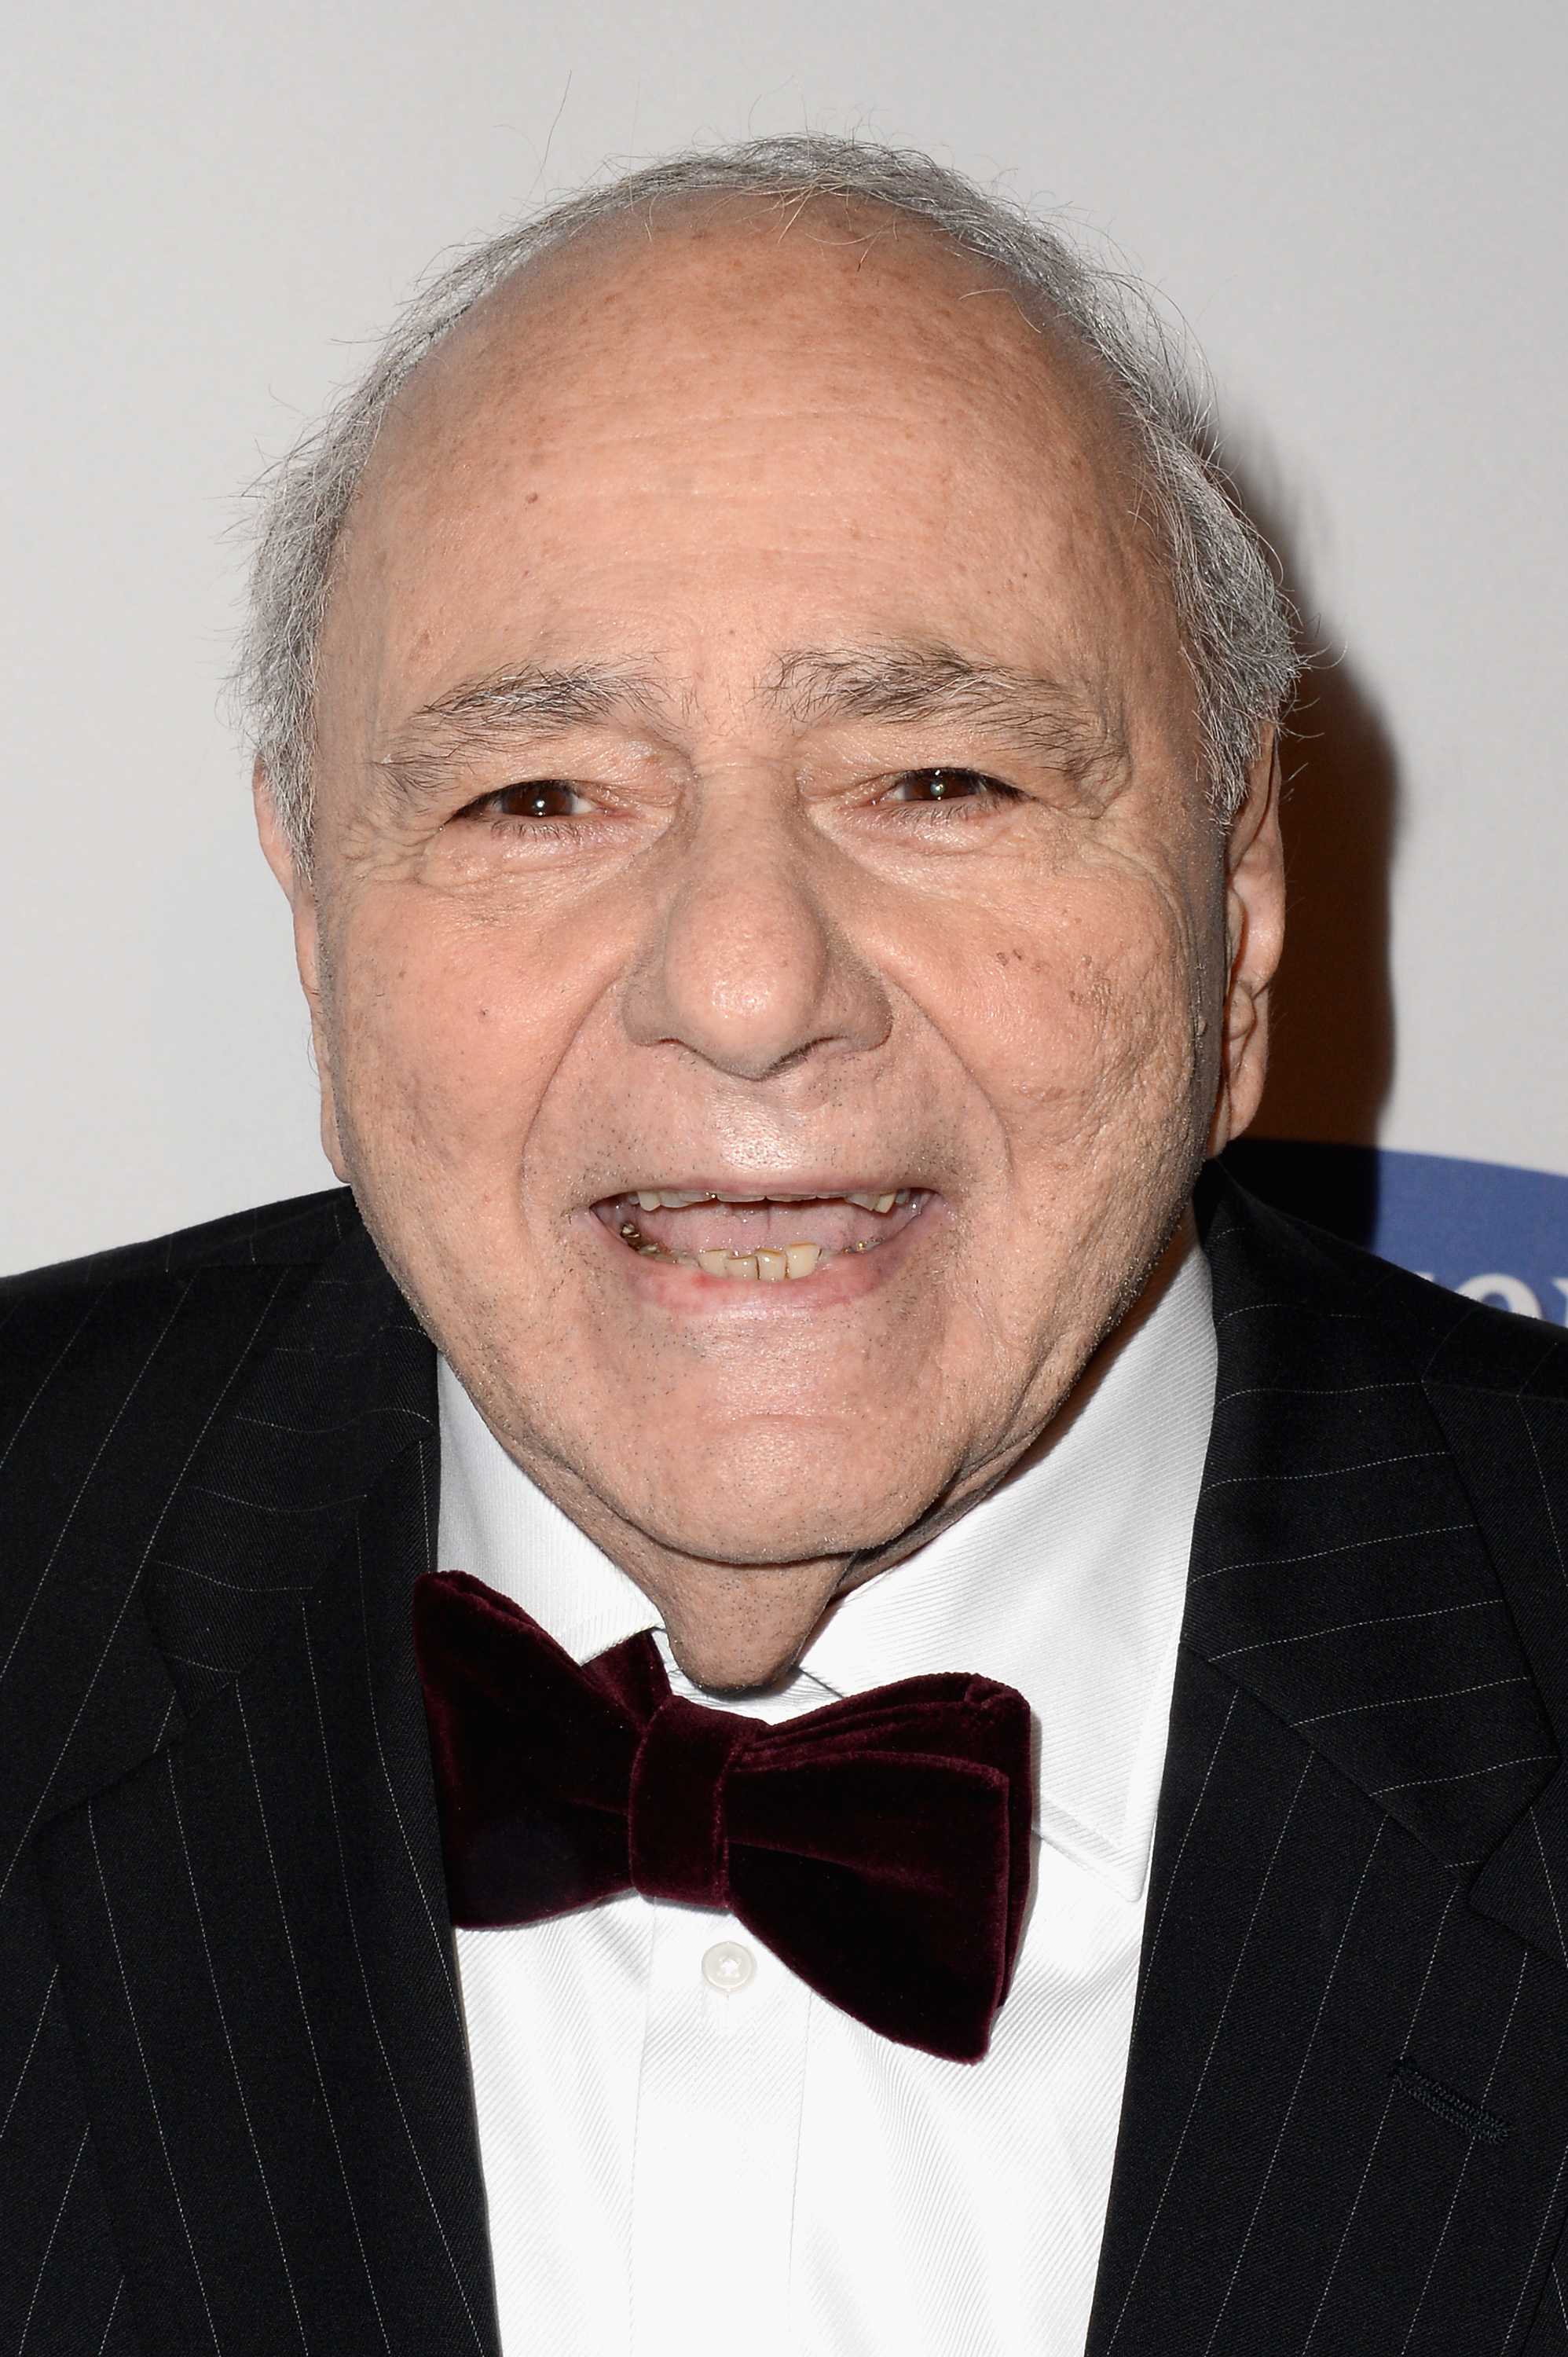 Michael Constantine at AMC Loews Lincoln Square 13 theatre on March 15, 2016 in New York City.